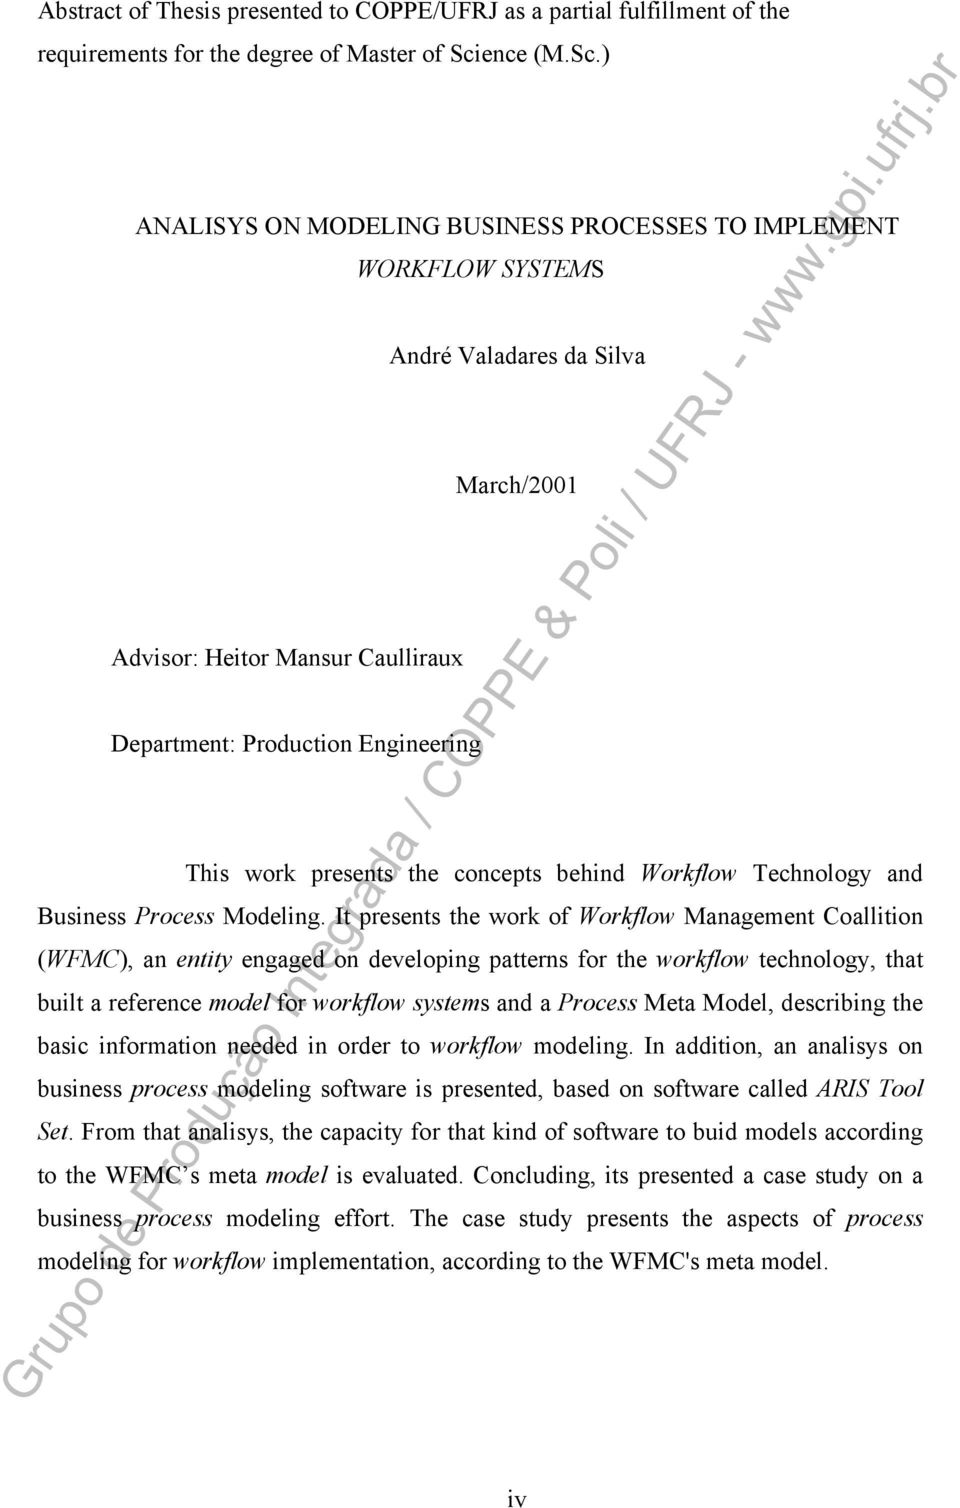 ) ANALISYS ON MODELING BUSINESS PROCESSES TO IMPLEMENT Advisor: Heitor Mansur Caulliraux WORKFLOW SYSTEMS Department: Production Engineering André Valadares da Silva March/2001 This work presents the